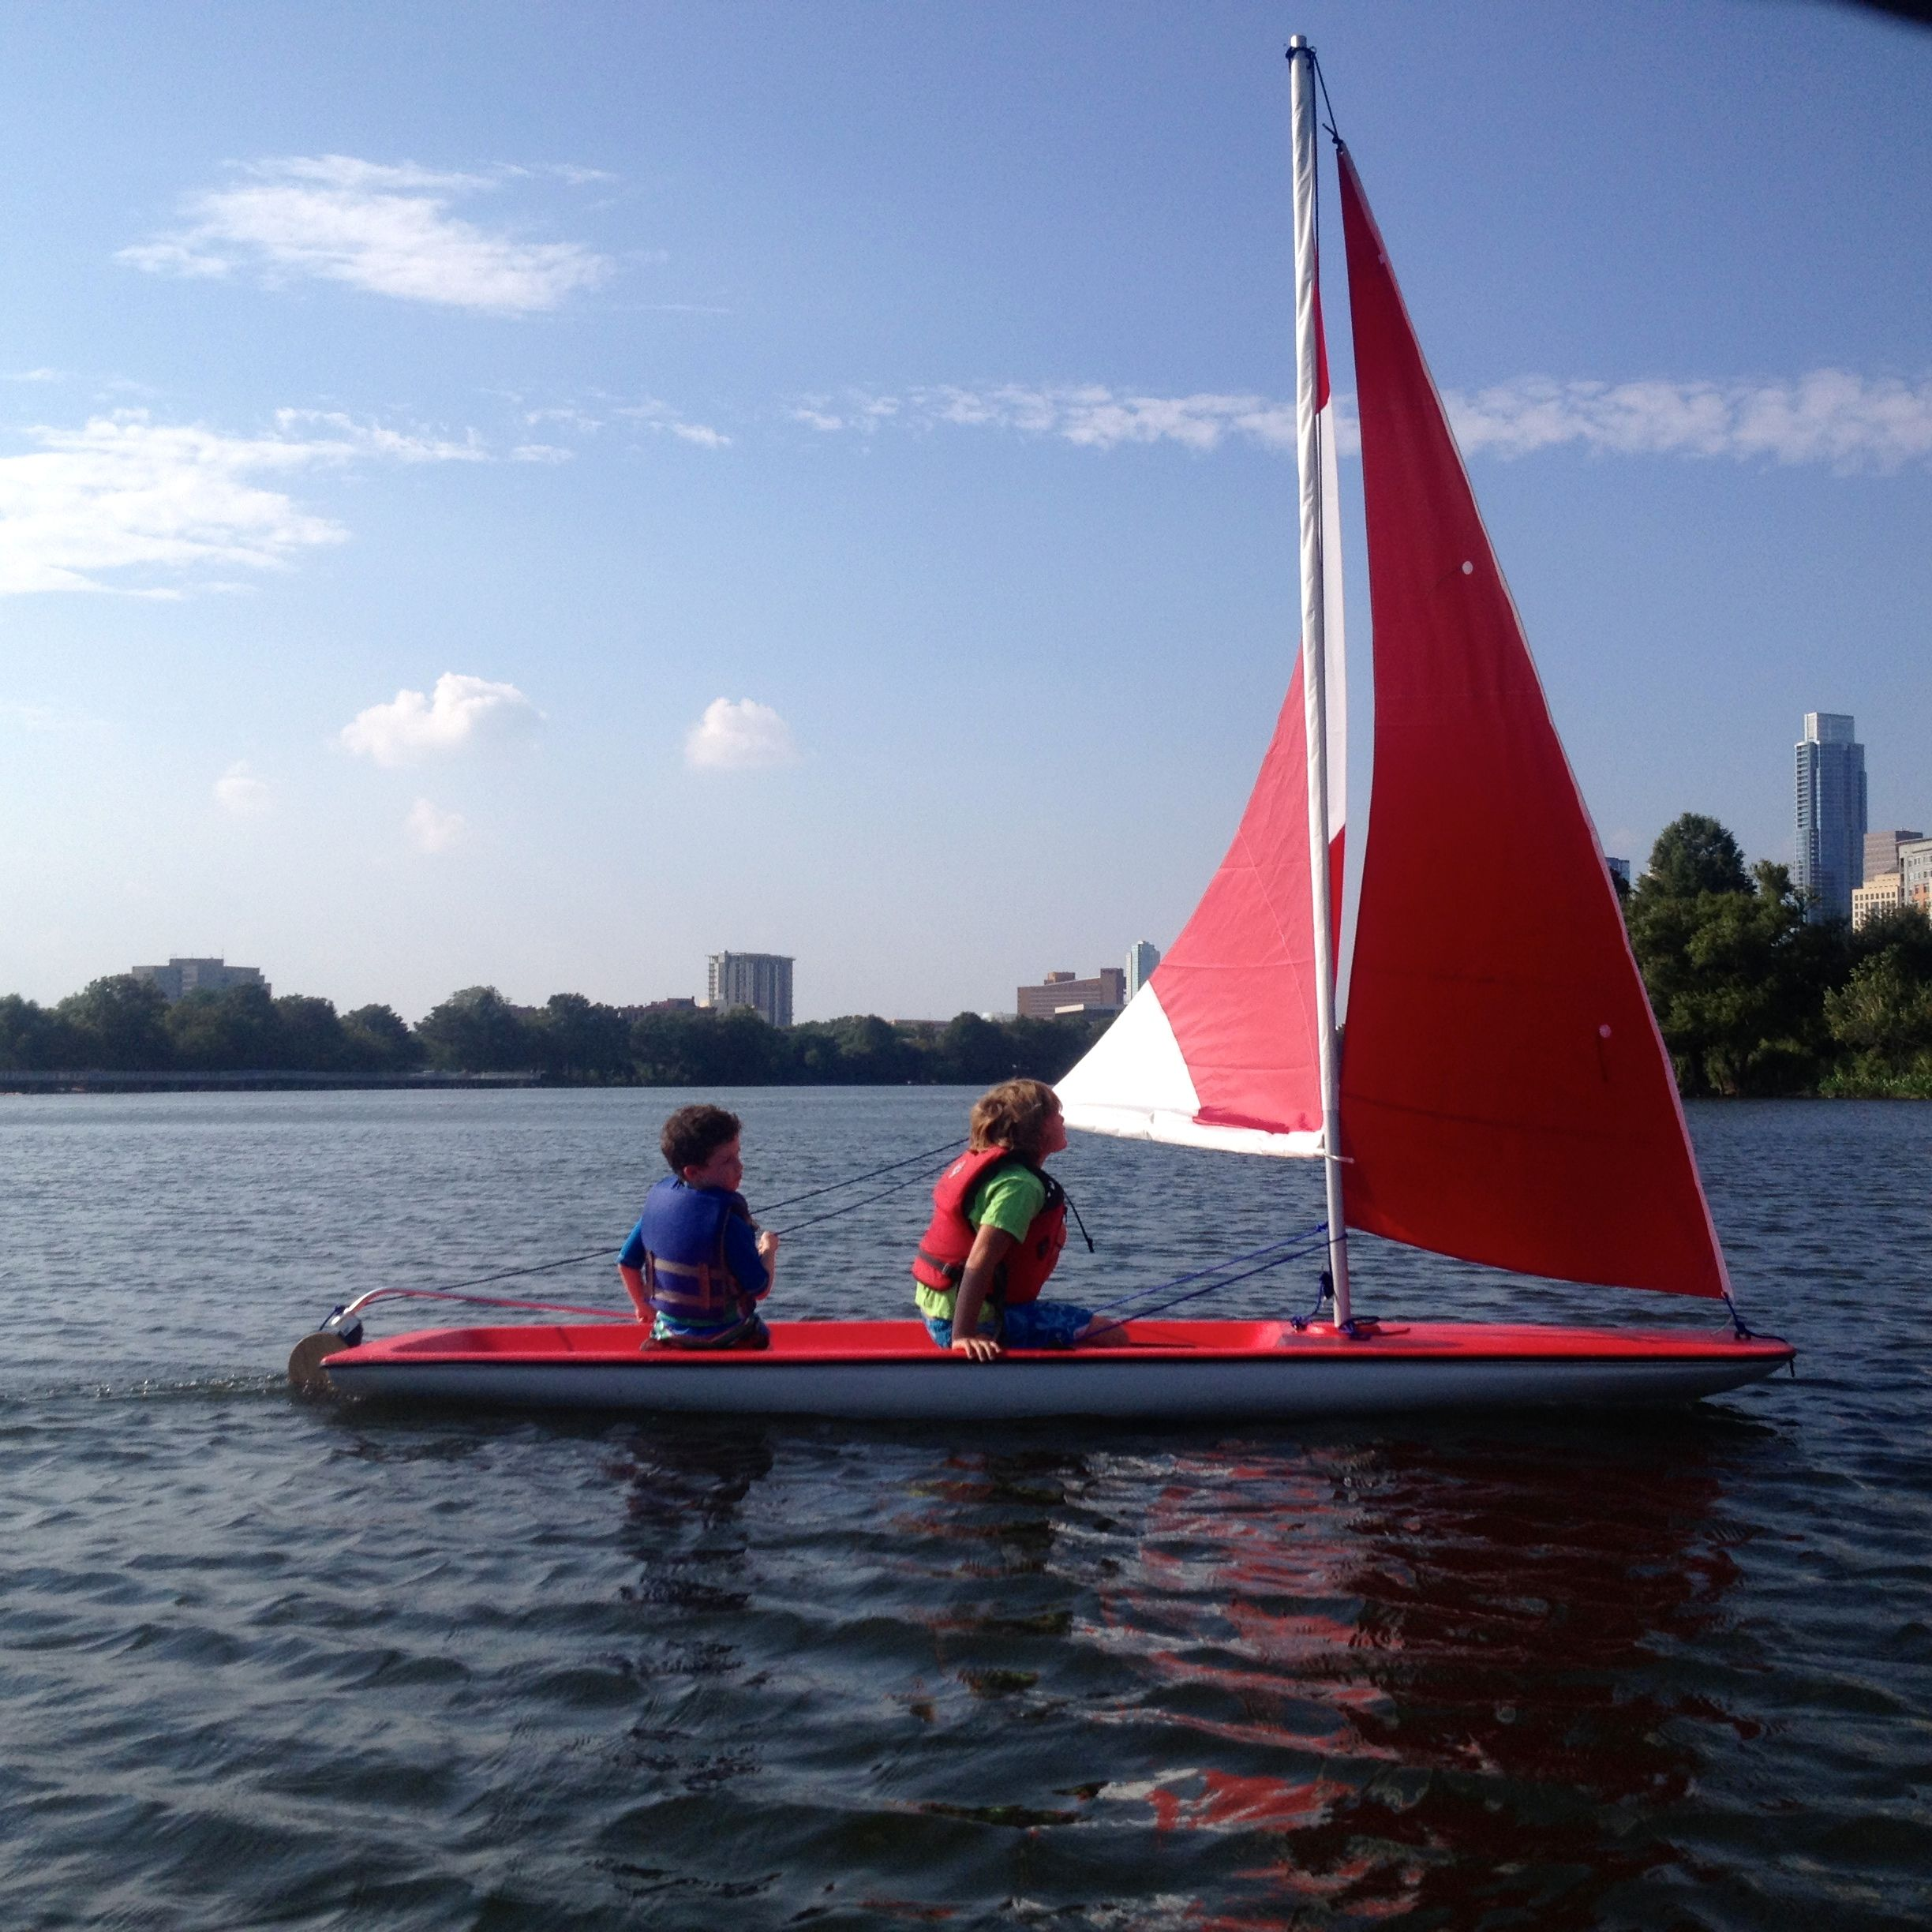 Our sea skimmer dinghy comes with a jib sail and is so